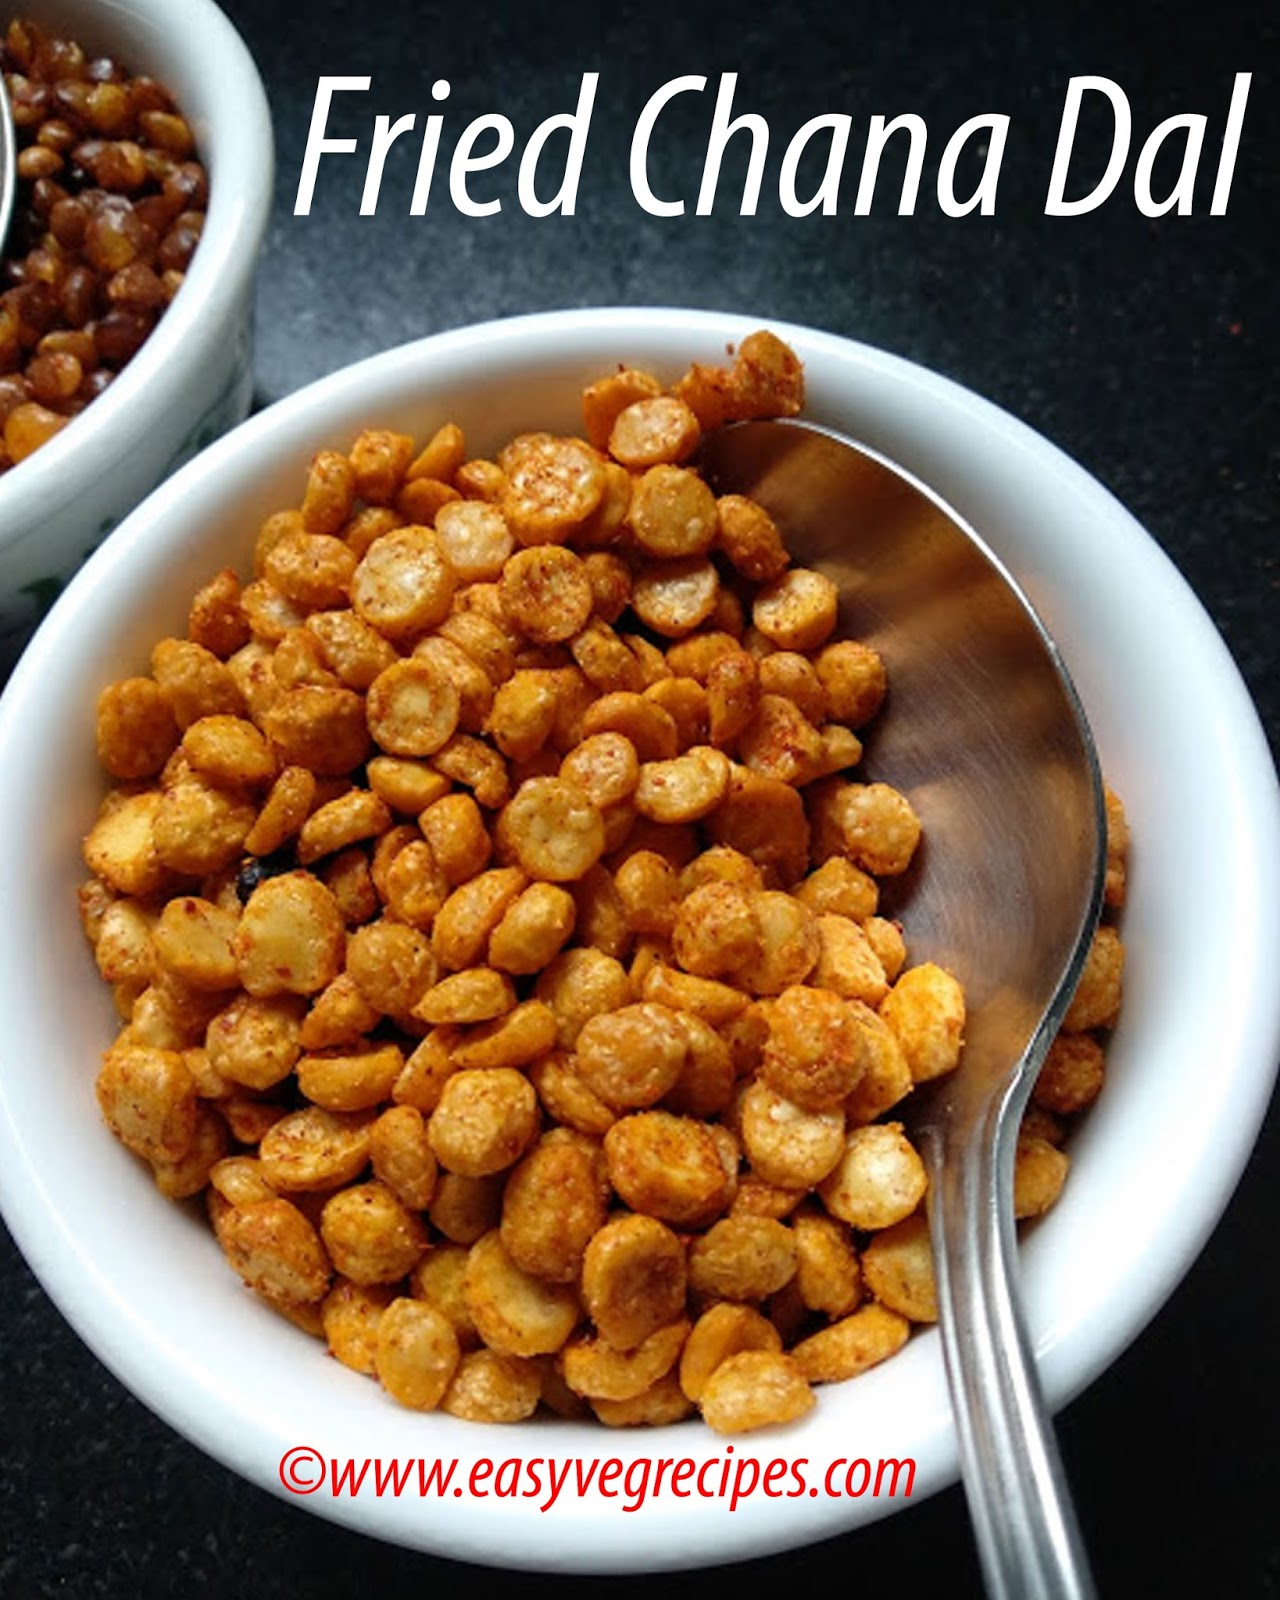 Fried Chana Dal